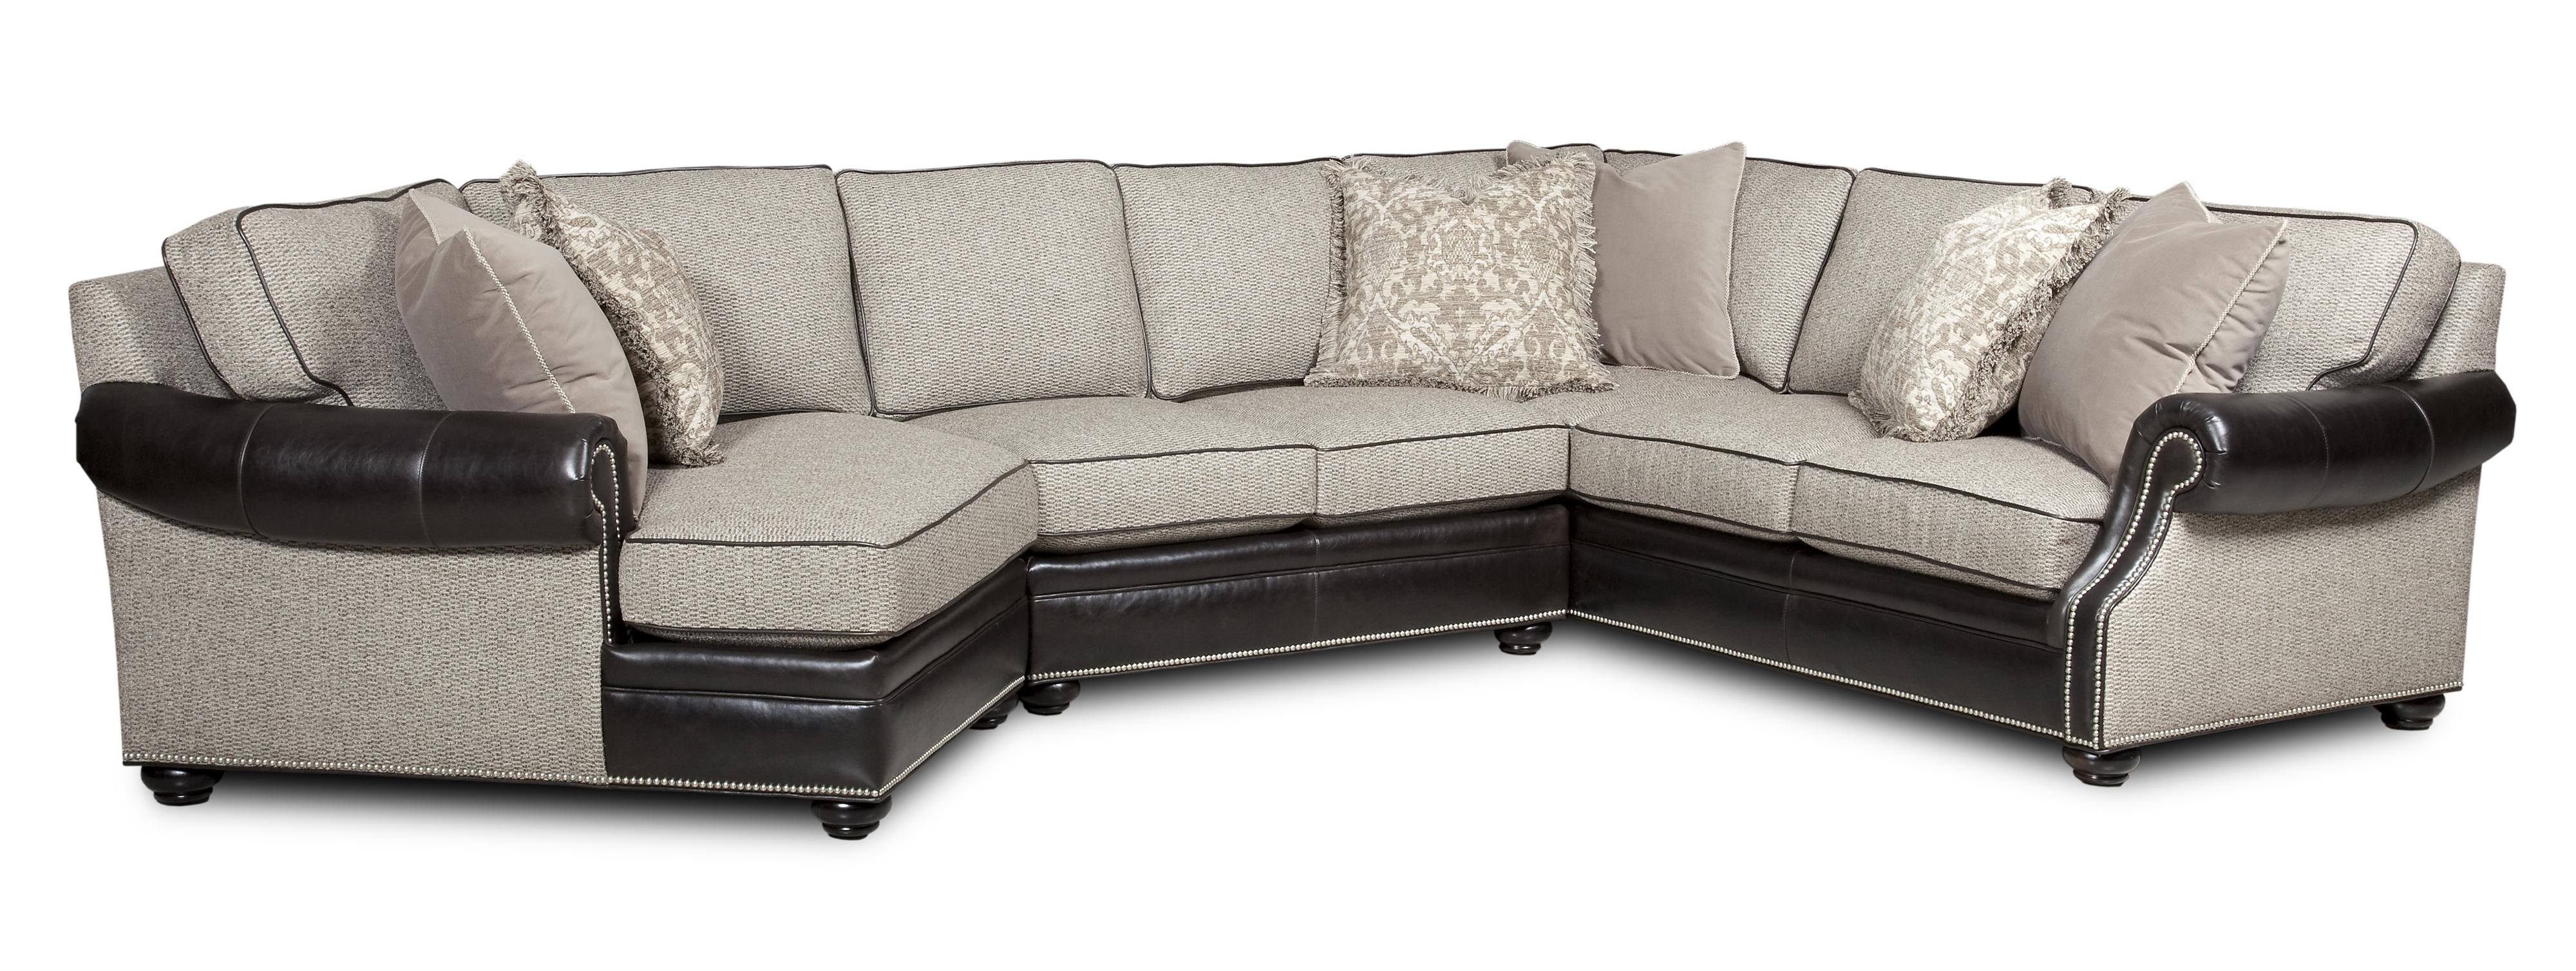 Bradington Young Warner Three Piece Sectional Sofa with LAF Cuddler - AHFA - Sofa Sectional Dealer Locator  sc 1 st  Furniture Dealer Locator - Find your furniture : sofa with cuddler sectional - Sectionals, Sofas & Couches